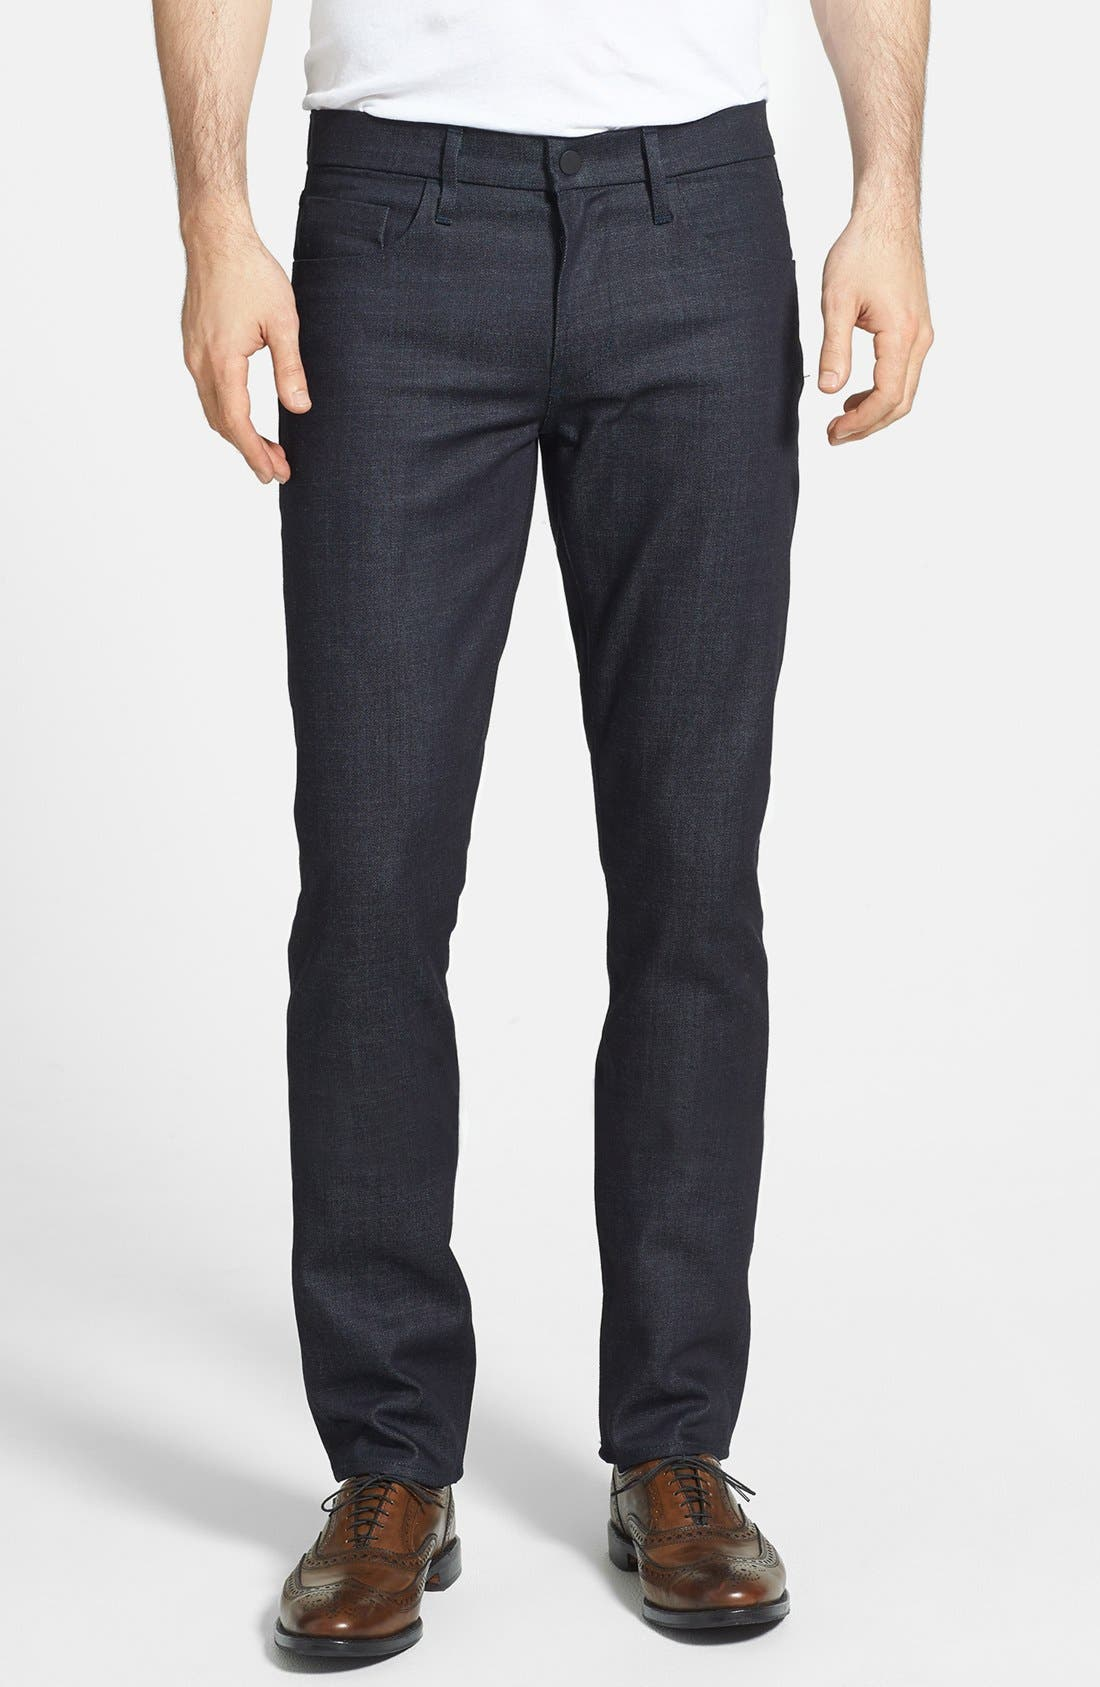 Alternate Image 1 Selected - J Brand 'Tyler' Skinny Fit Jeans (Clean Raw)